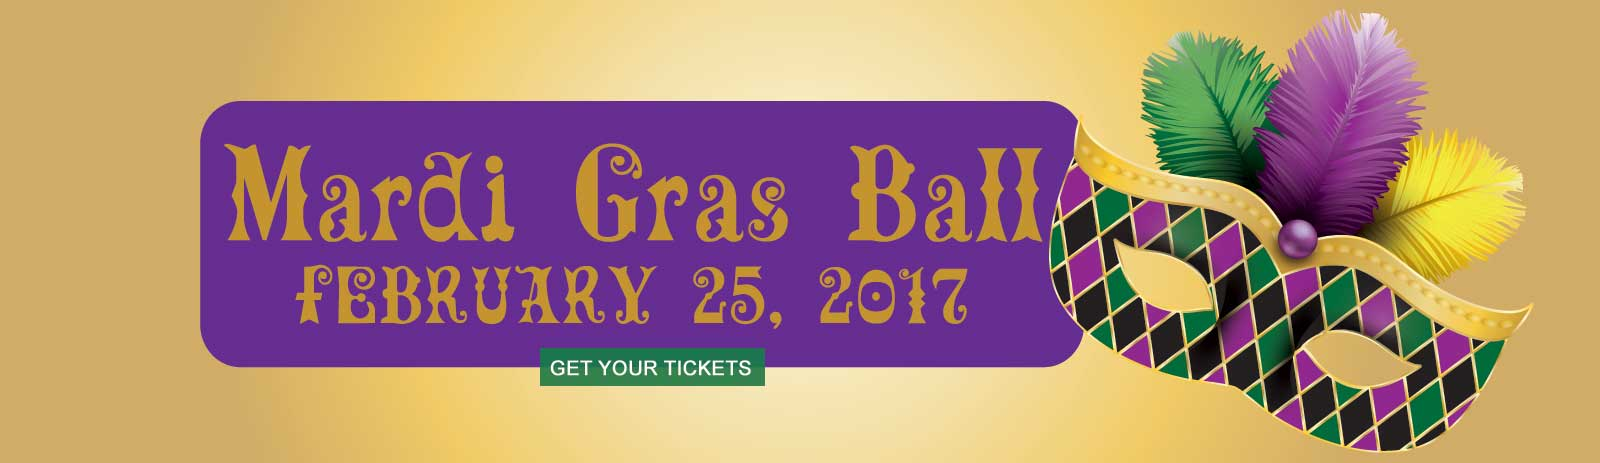 Get your tickets for the Mardi Gras Ball - St. Katharine Drexel Mission